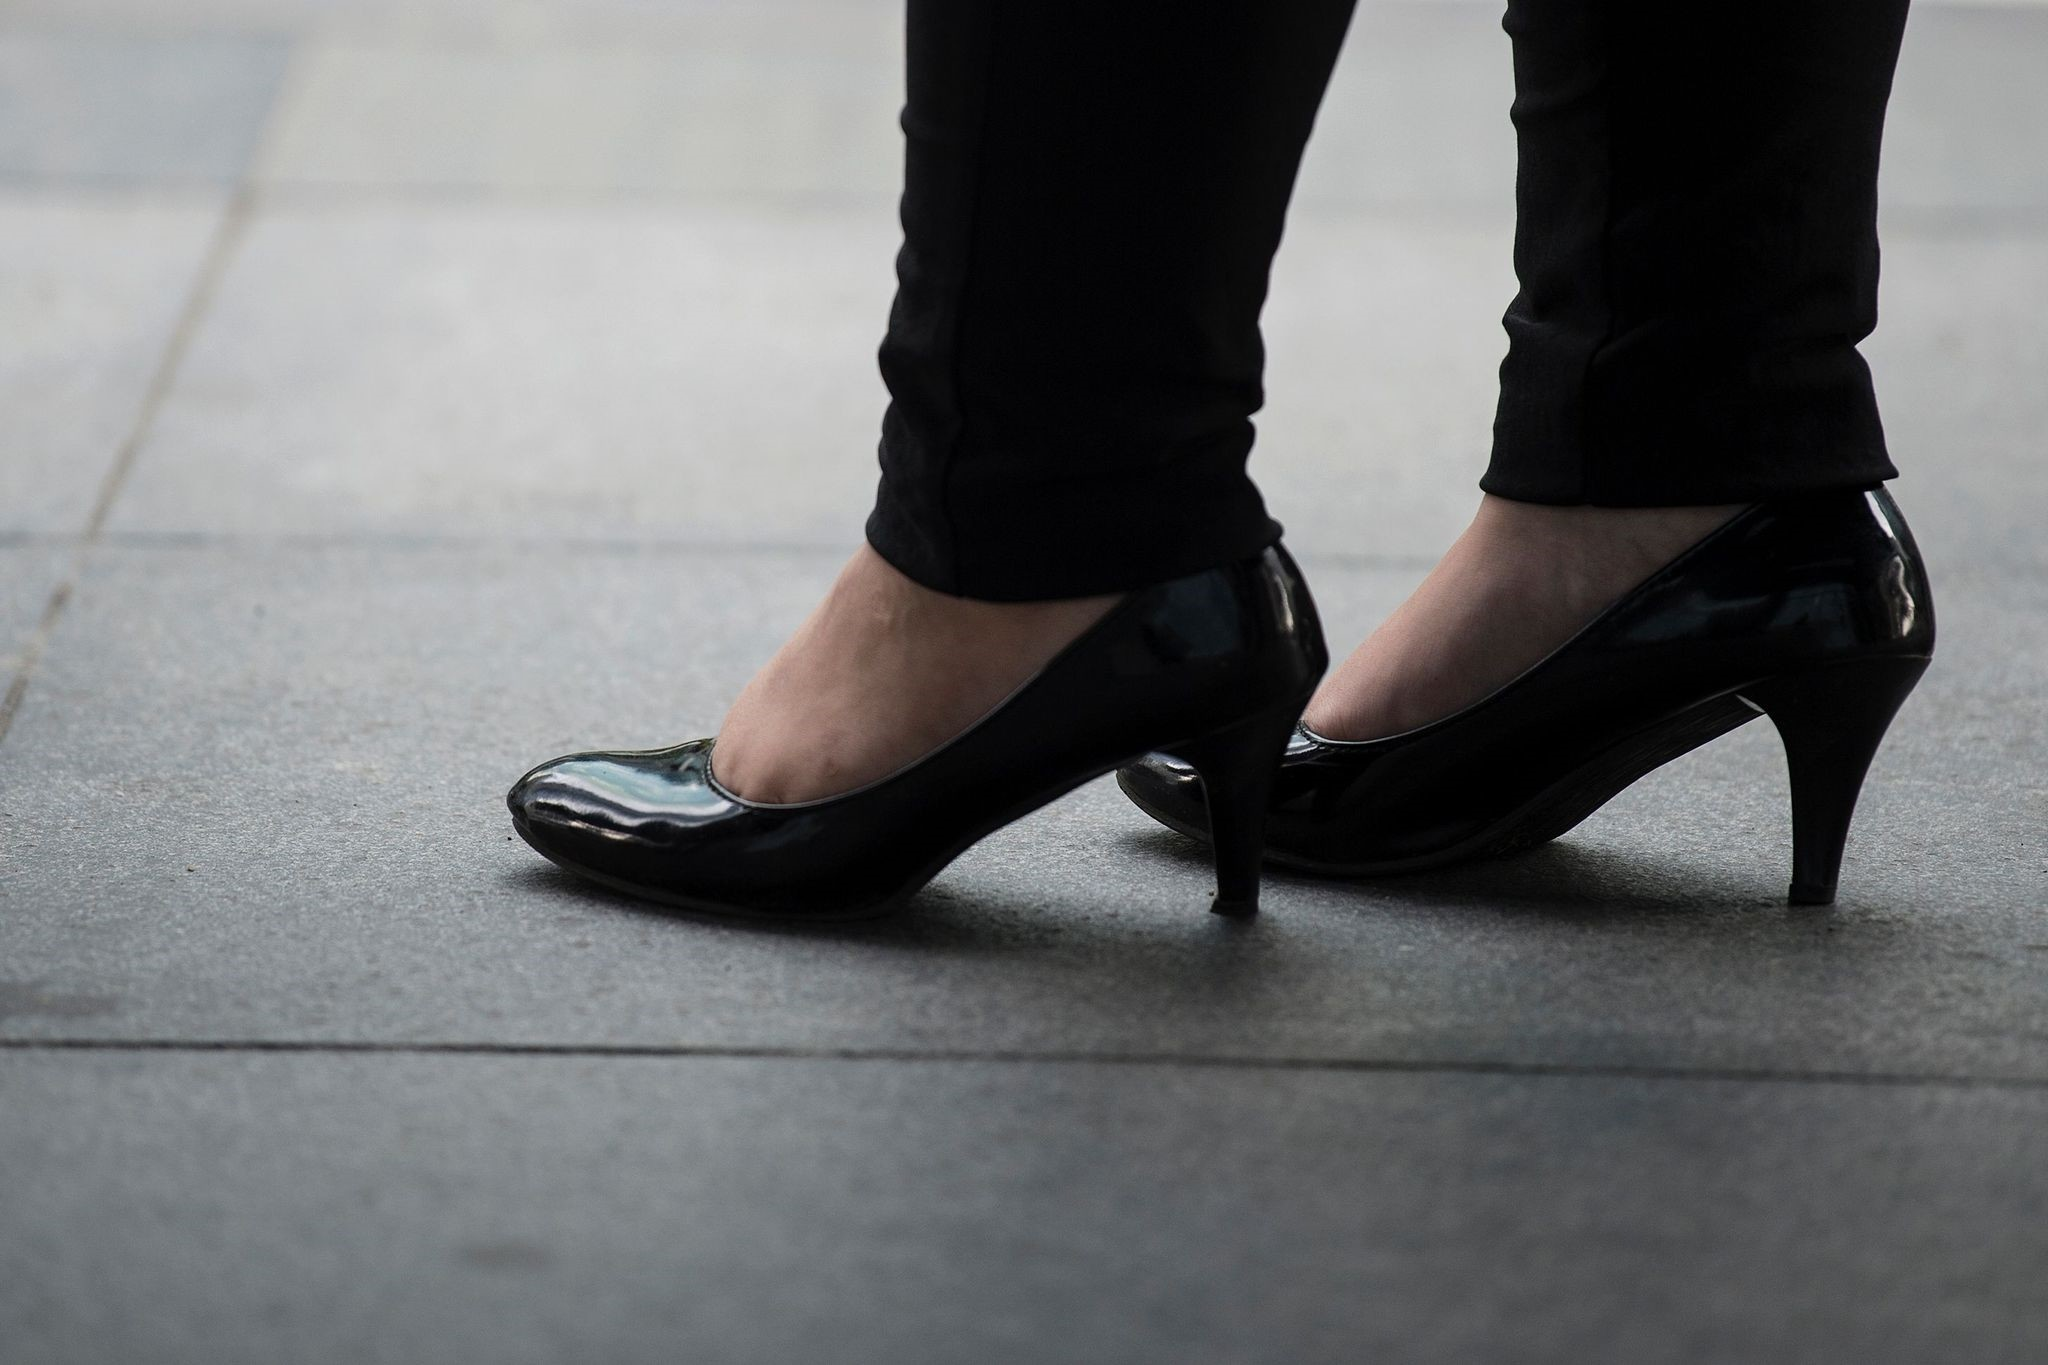 An office worker is seen wearing high-heeled shoes in Makati, Manila's financial district, on September 25, 2017. (AFP Photo)